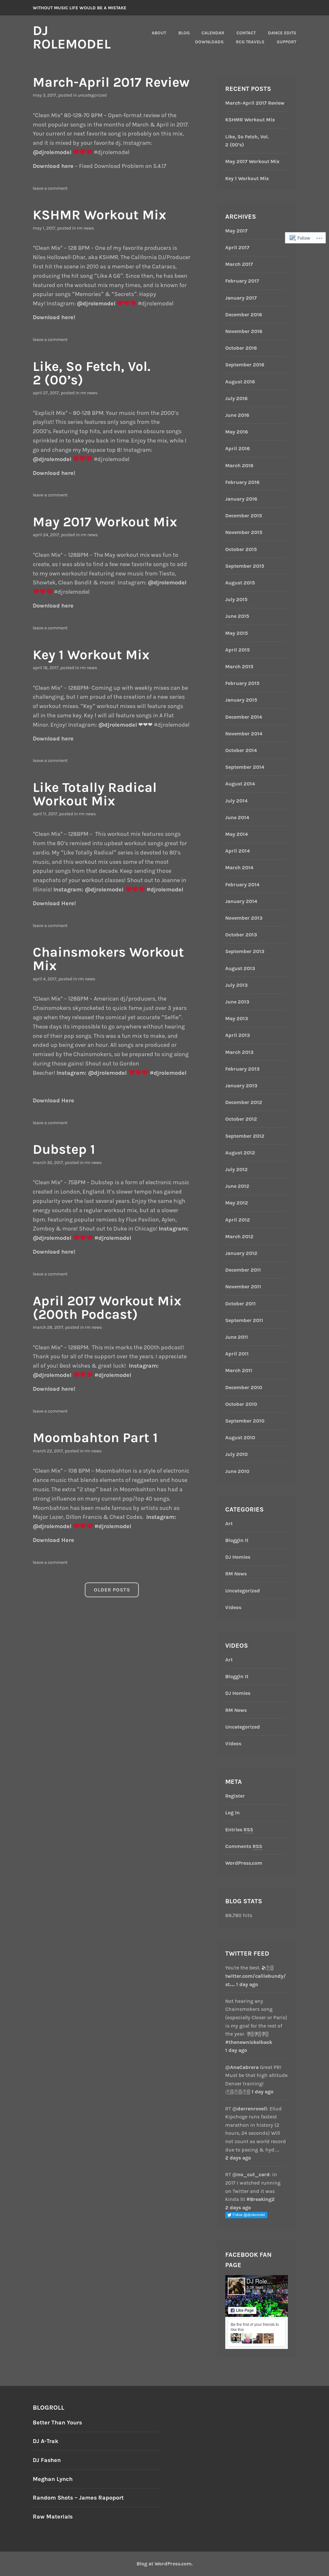 Dj Rolemodel Music Competitors, Revenue and Employees